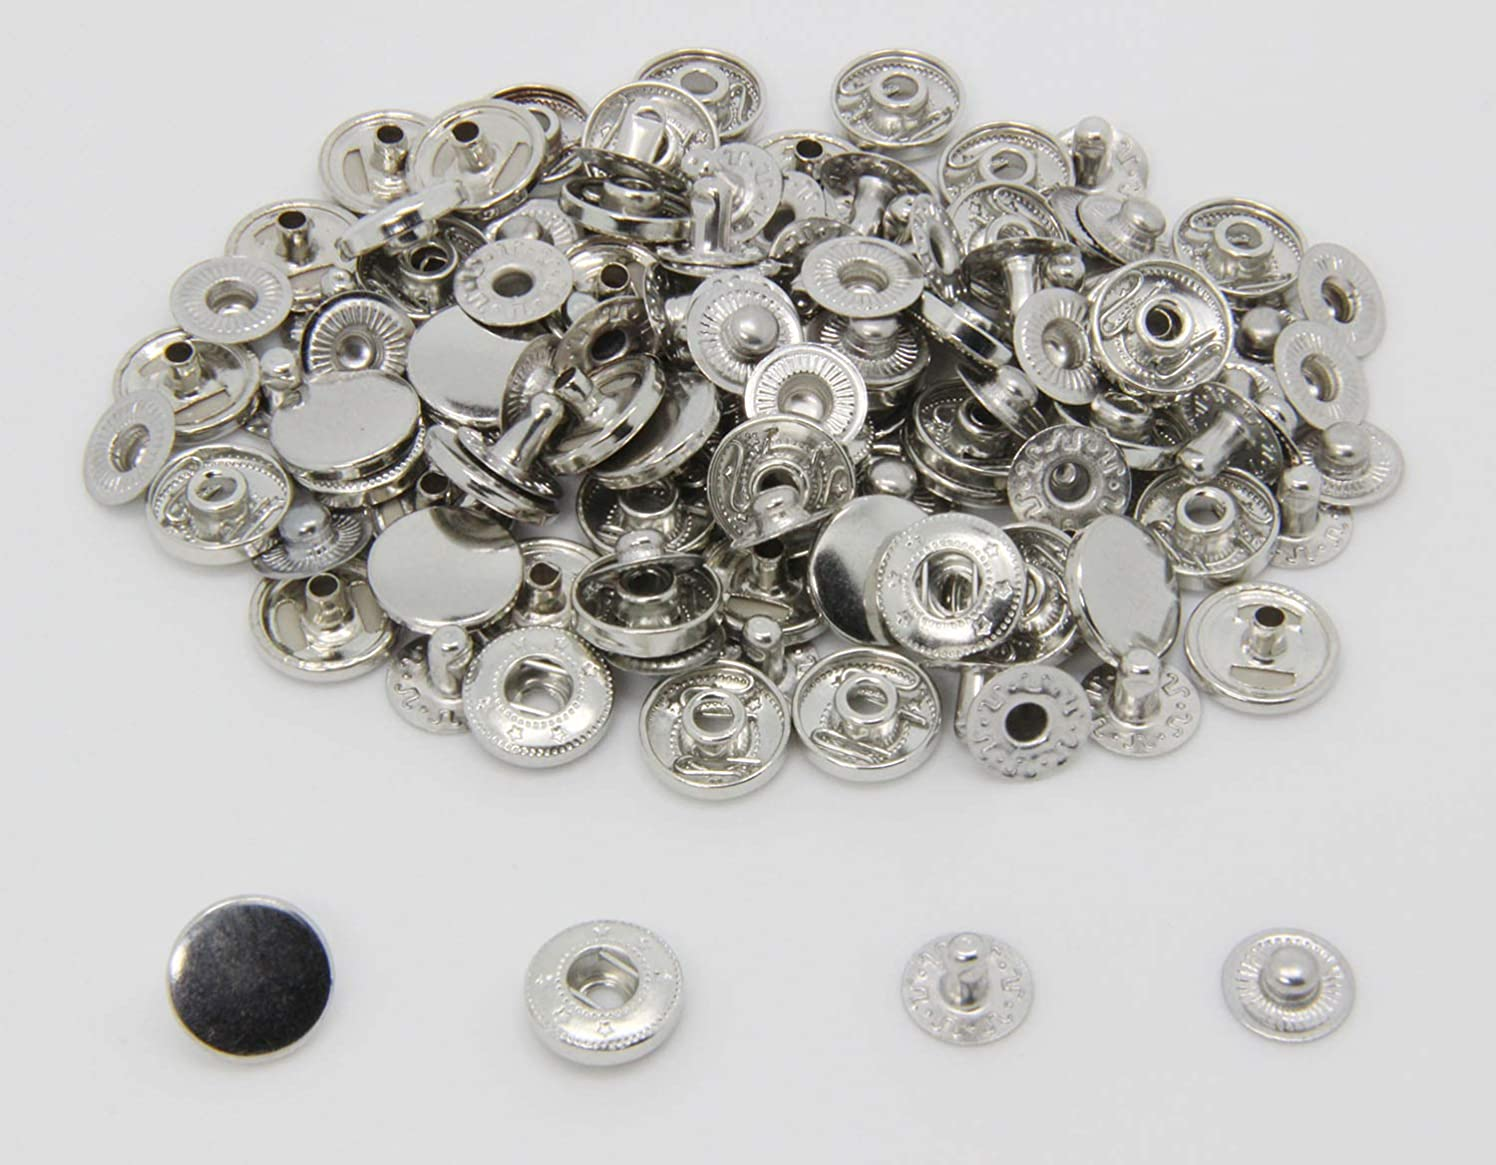 30 Sets Heavy Duty Snap Fasteners, BetterJonny 15mm Silver Poppers Press Stud Rivet for Leather Craft Sewing Clothing